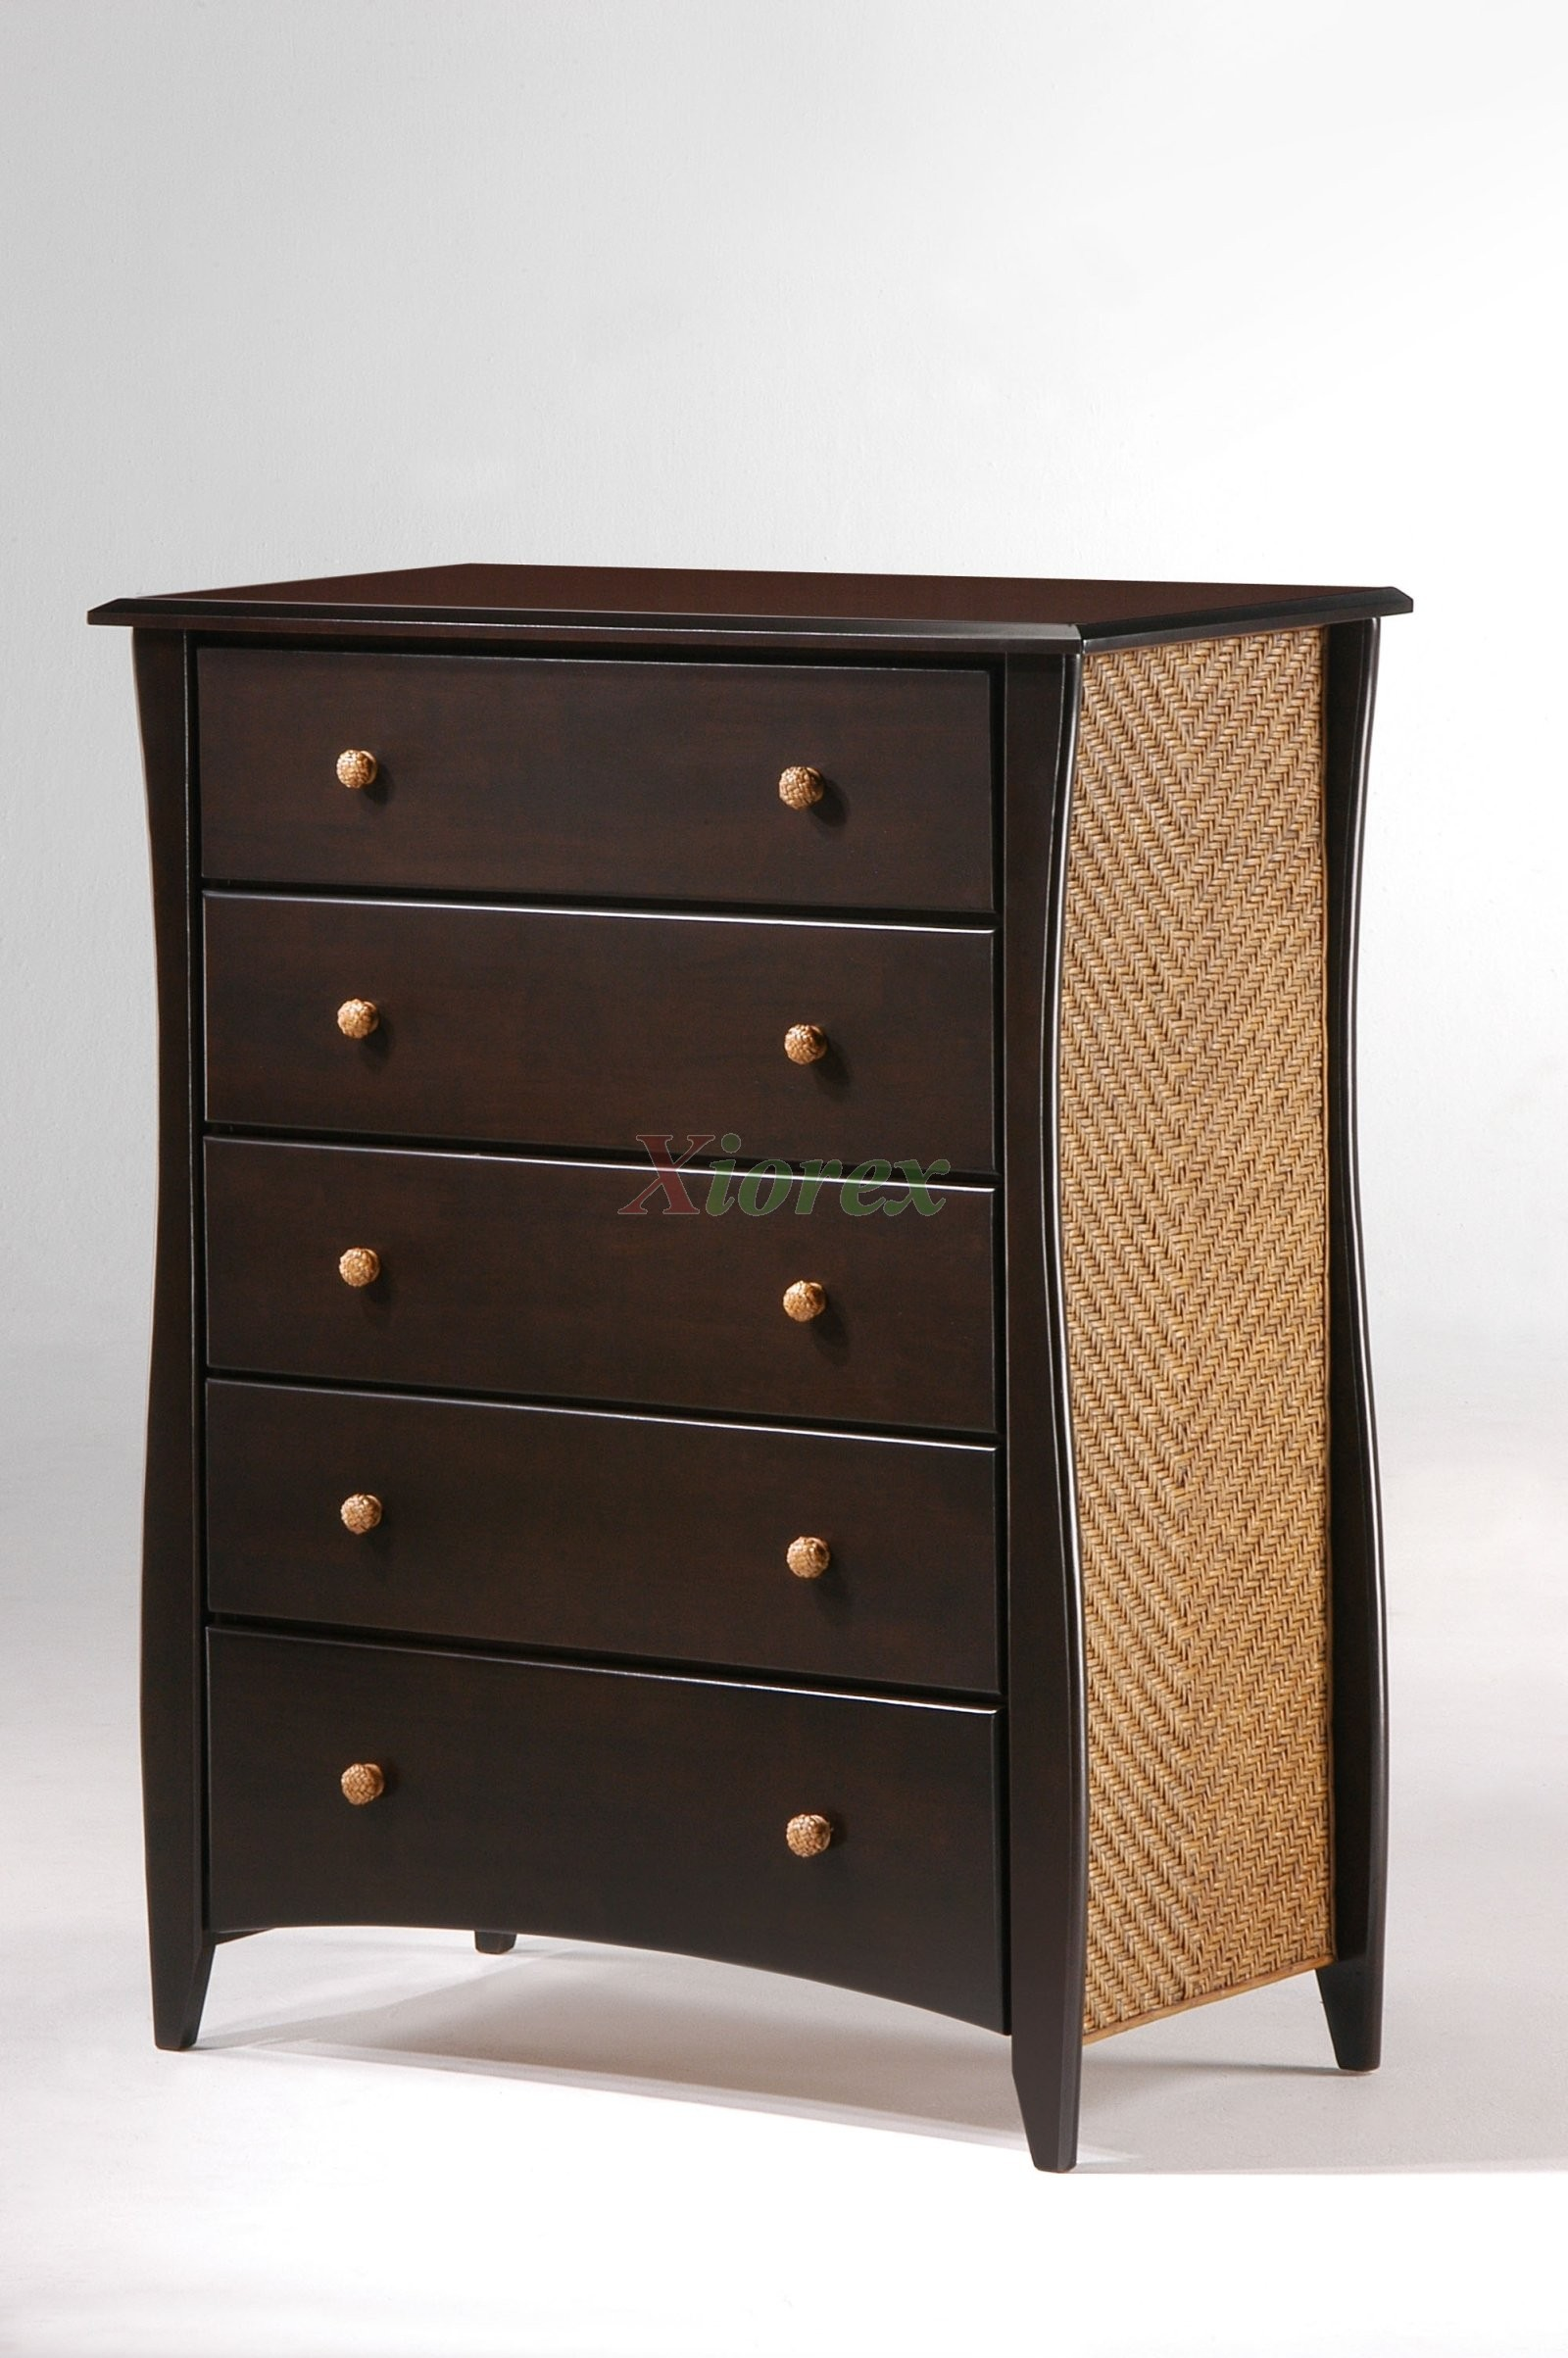 Clove 5 Drawer Chest Xiorex